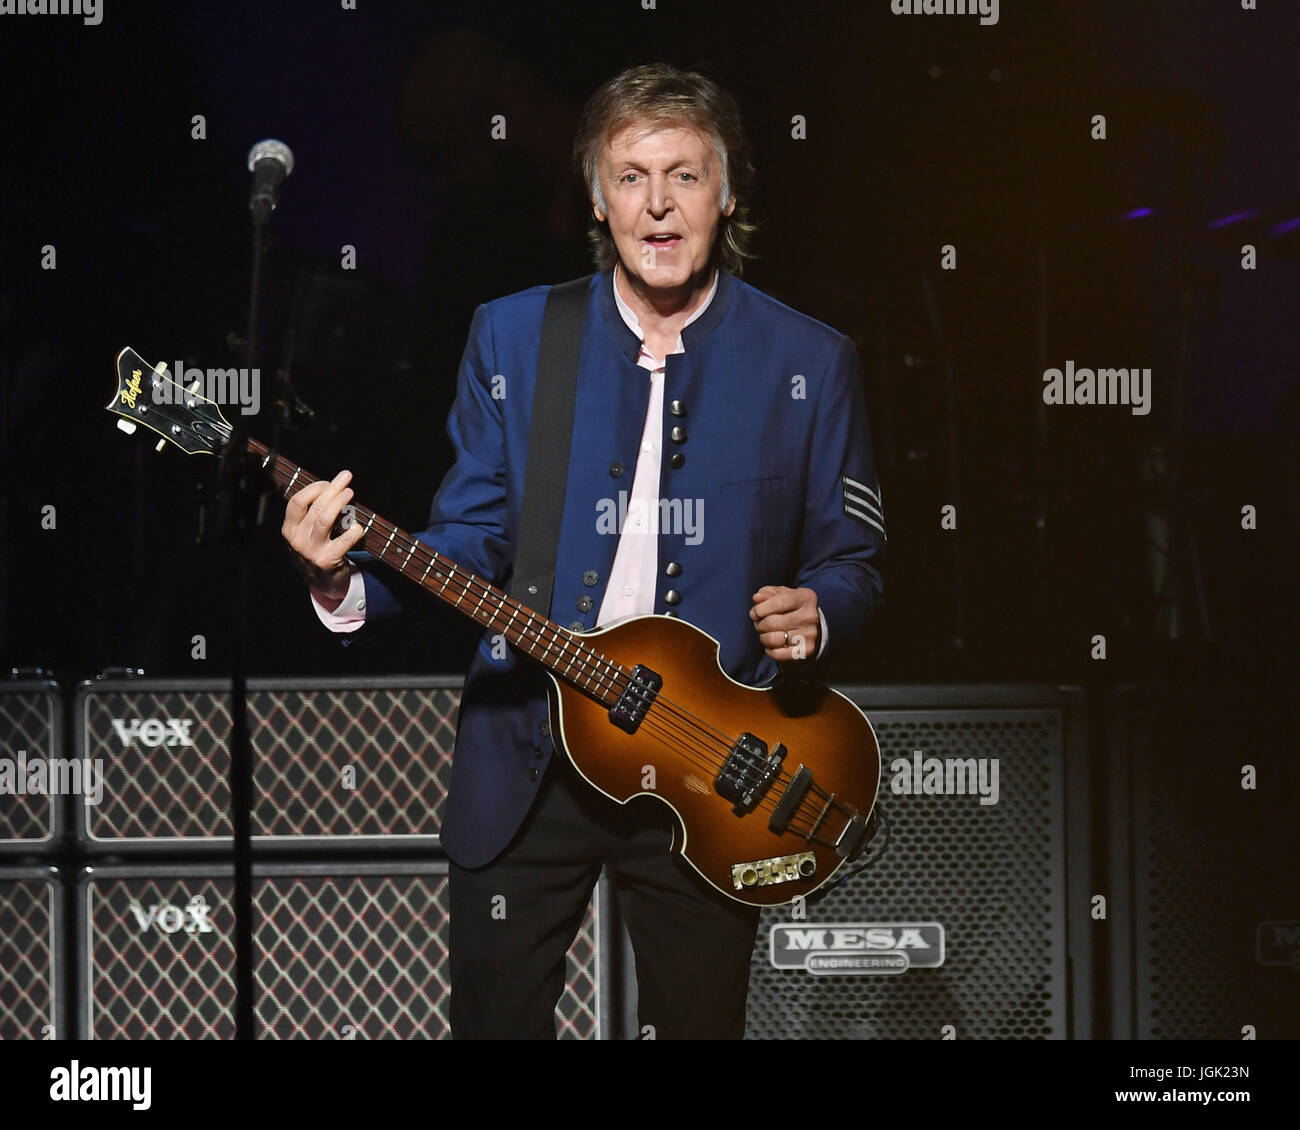 Miami, FL, USA. 07th July, 2017. Paul McCartney performs on the opening night of his One On One tour at the AmericanAirlines - Stock Image